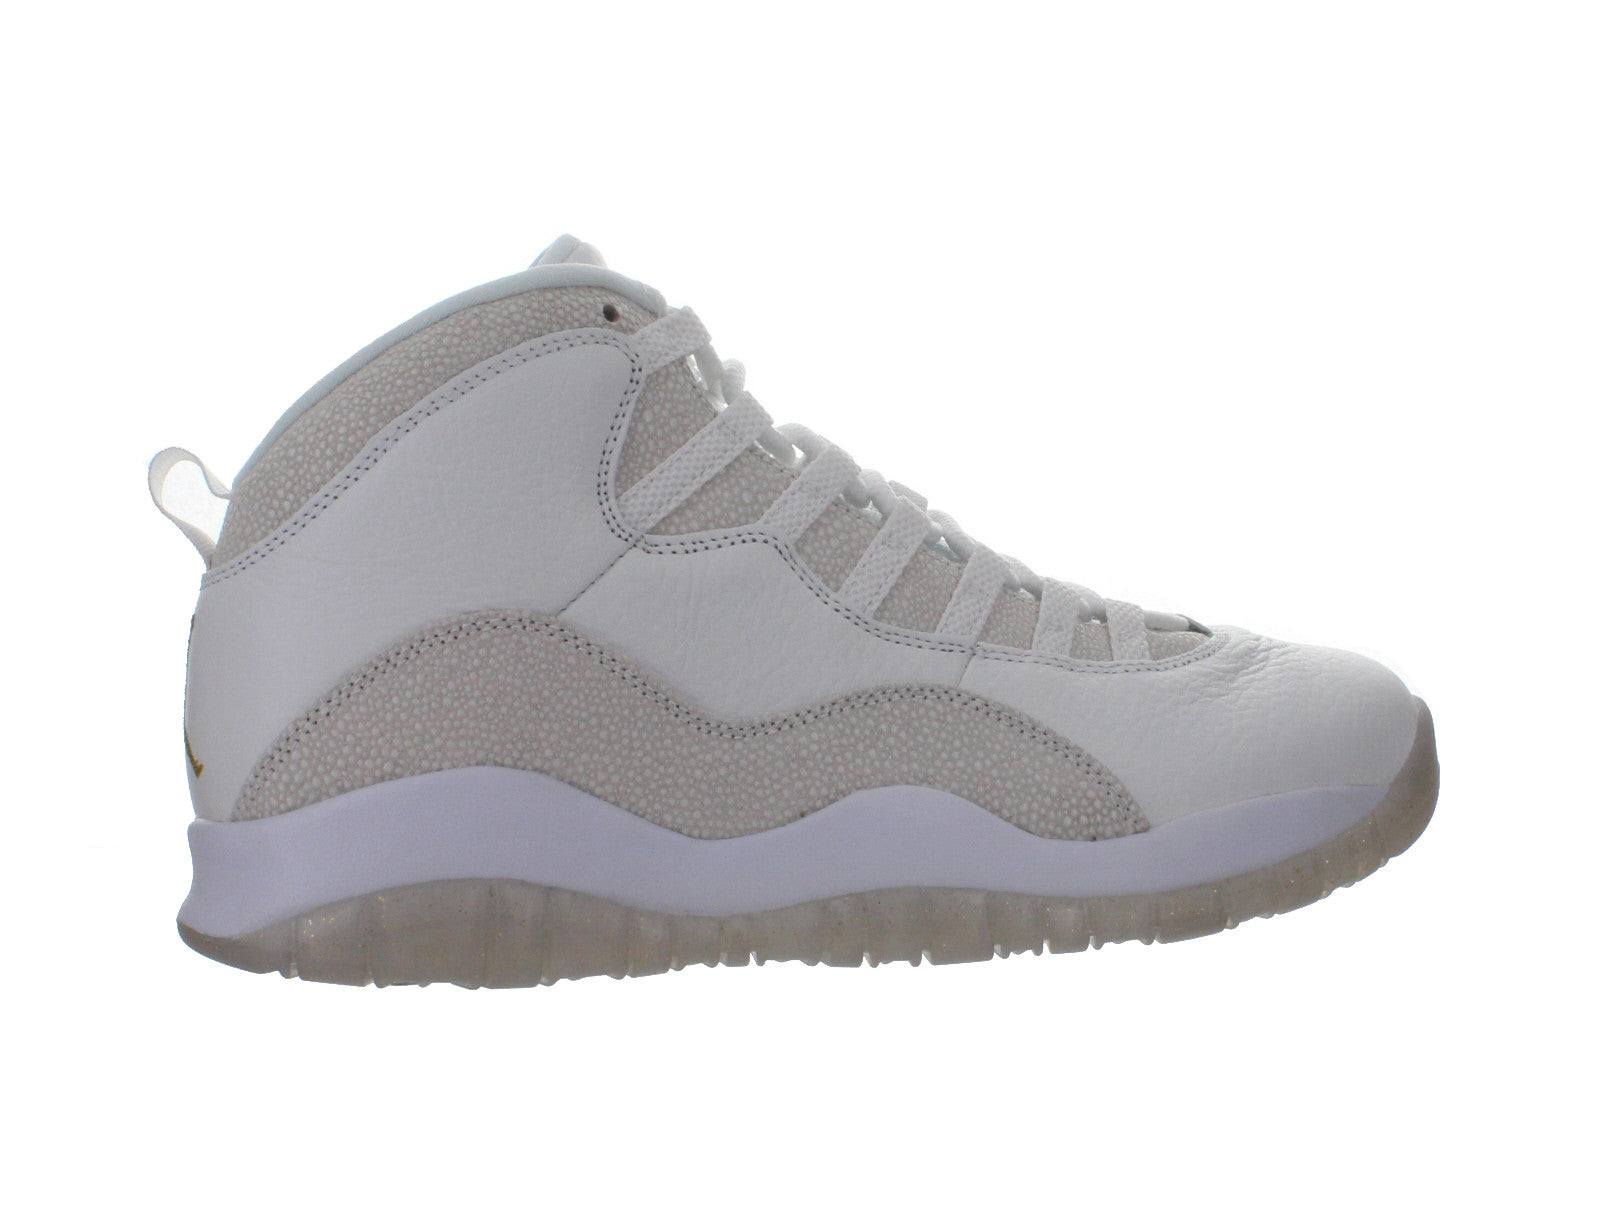 0db3b458509ccf Details about Mens Air Jordan 10 X Retro OVO Drake Summit White Metallic  Gold White 819955-100